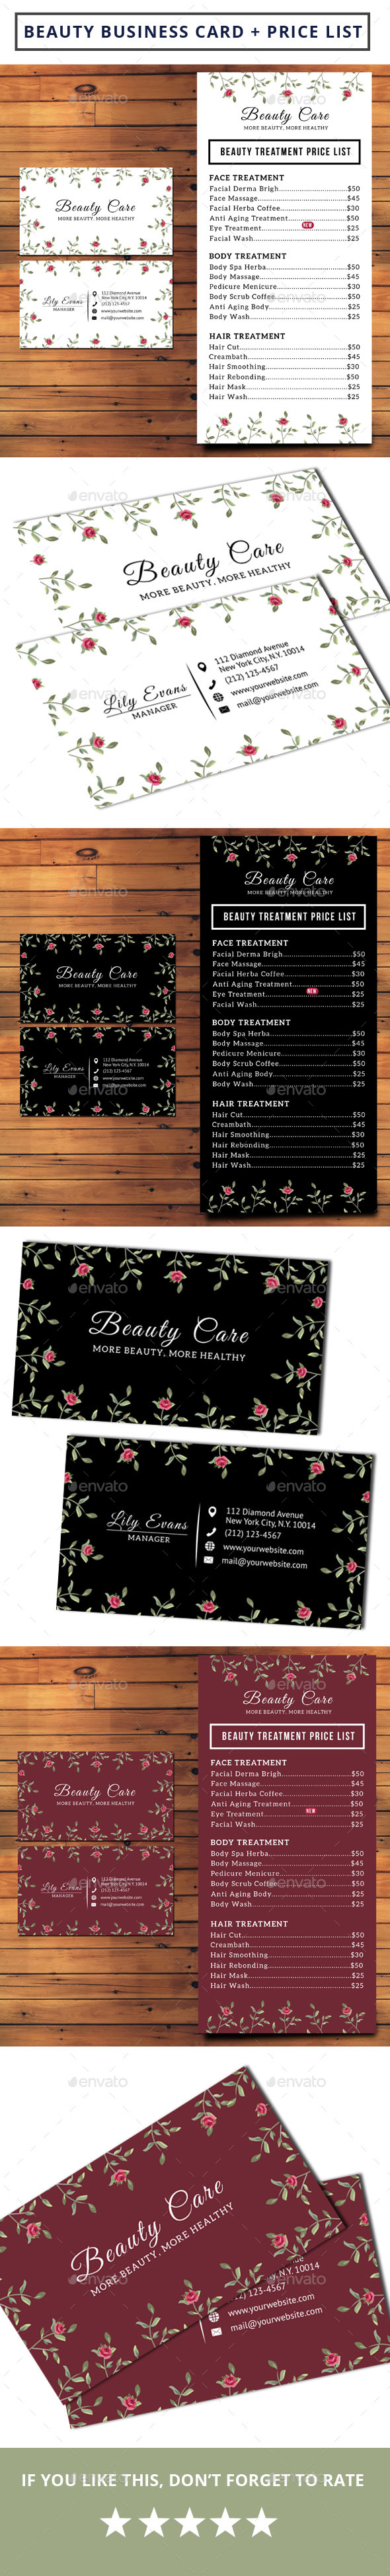 Beauty Business Card Graphics, Designs & Templates